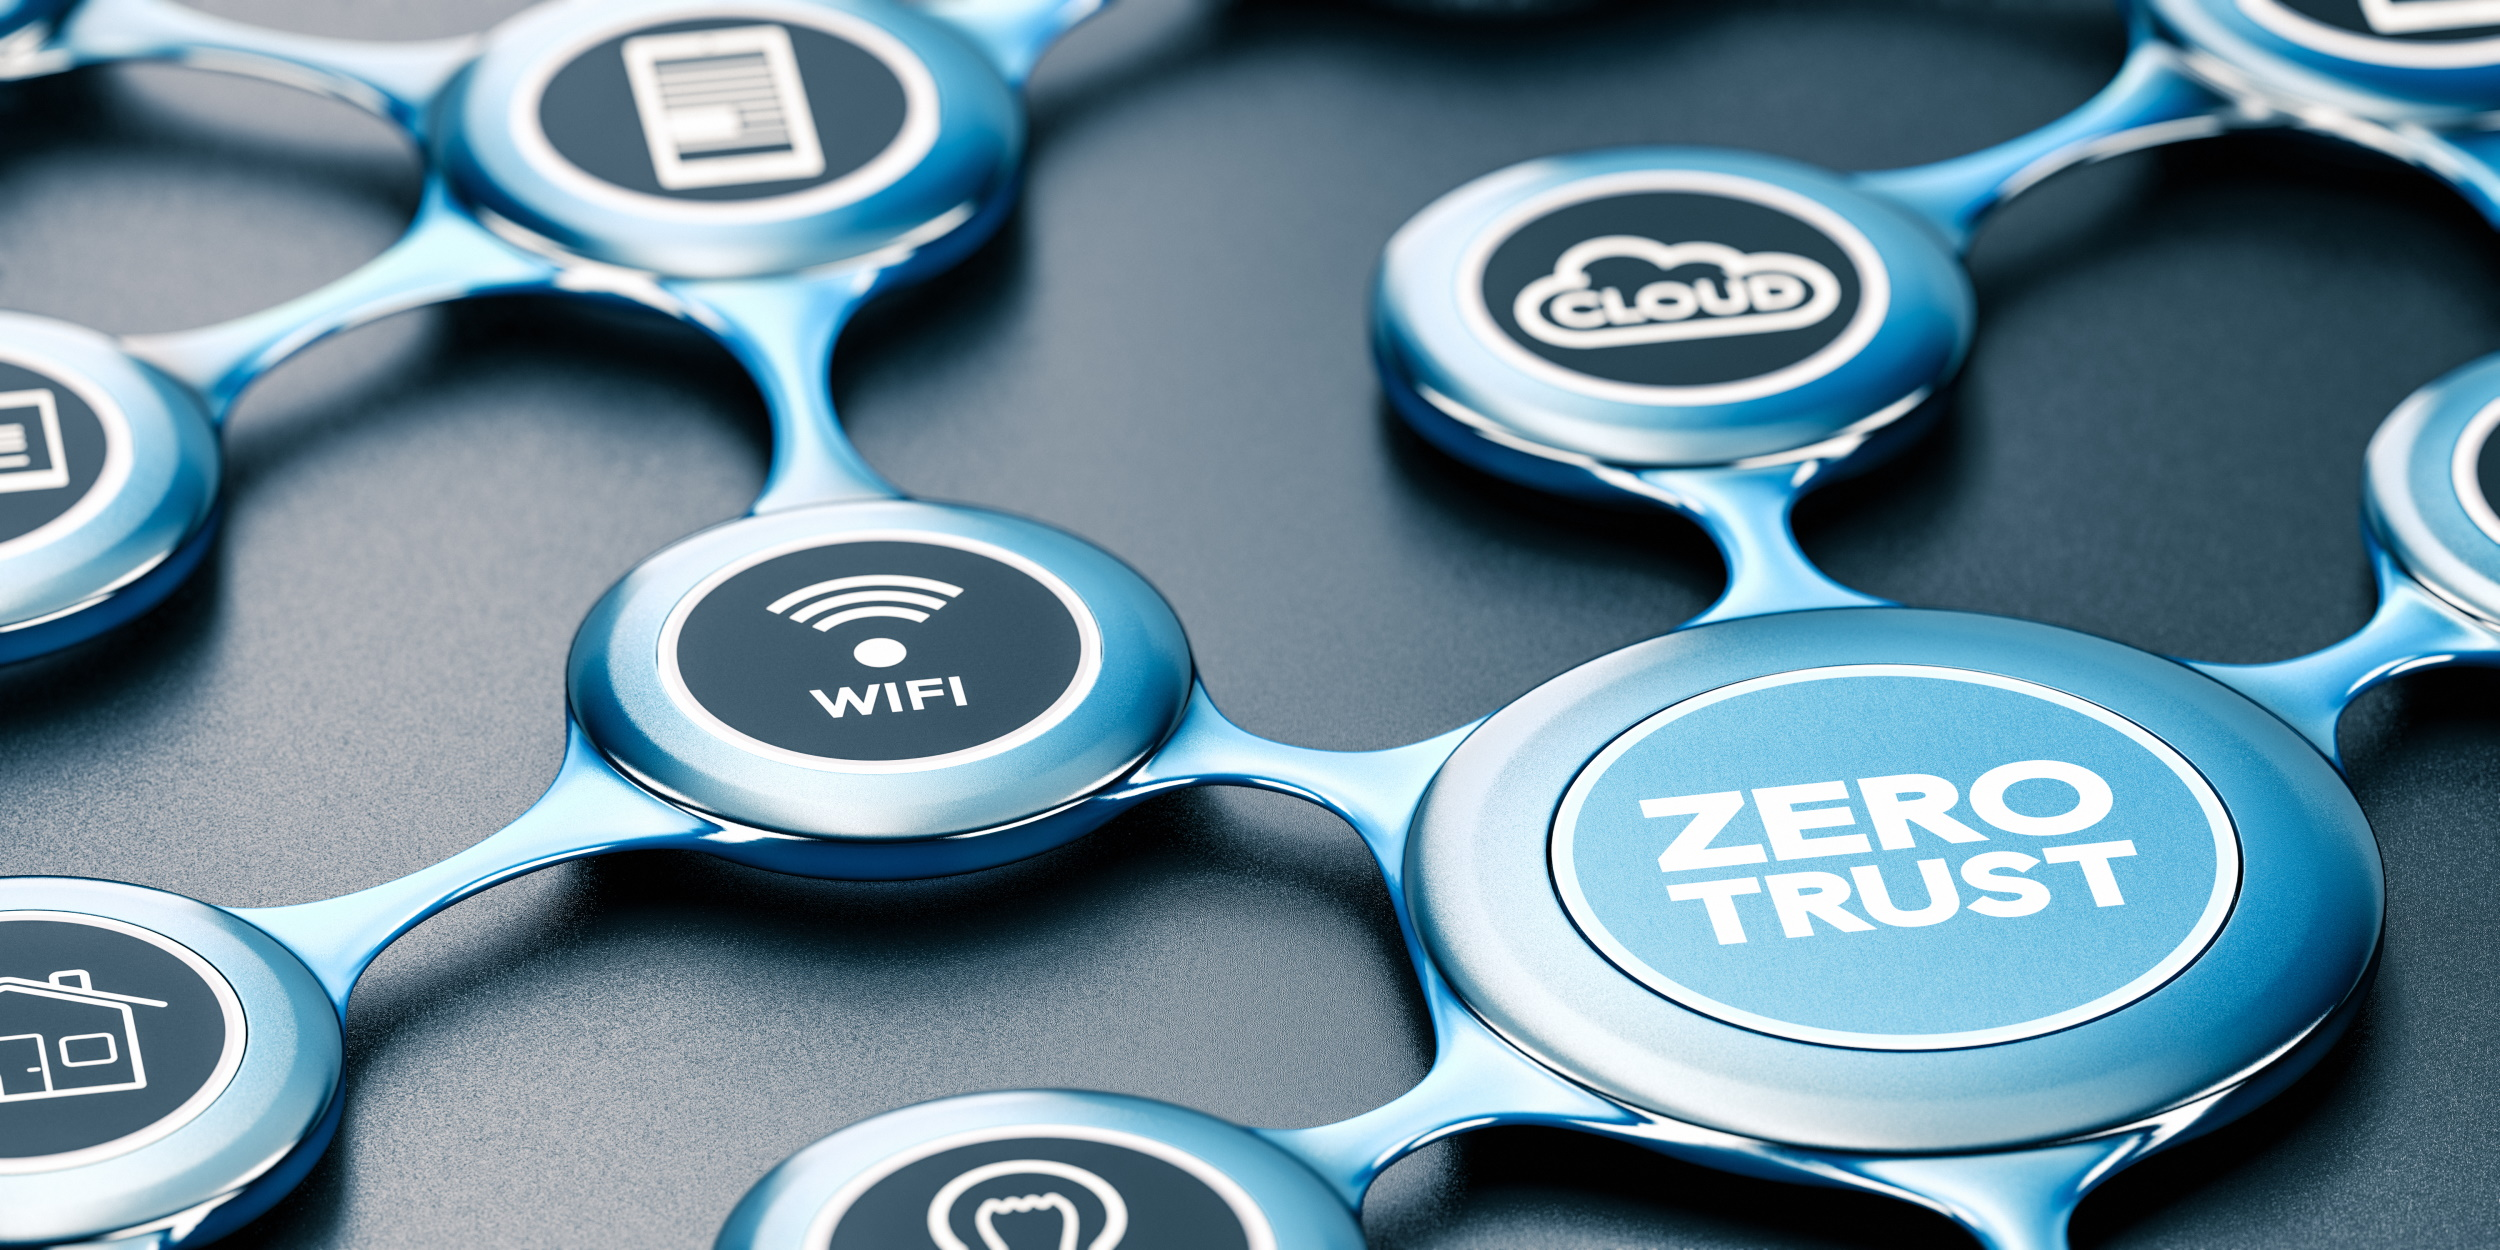 Zero trust and IoT concepts connected in an optical network